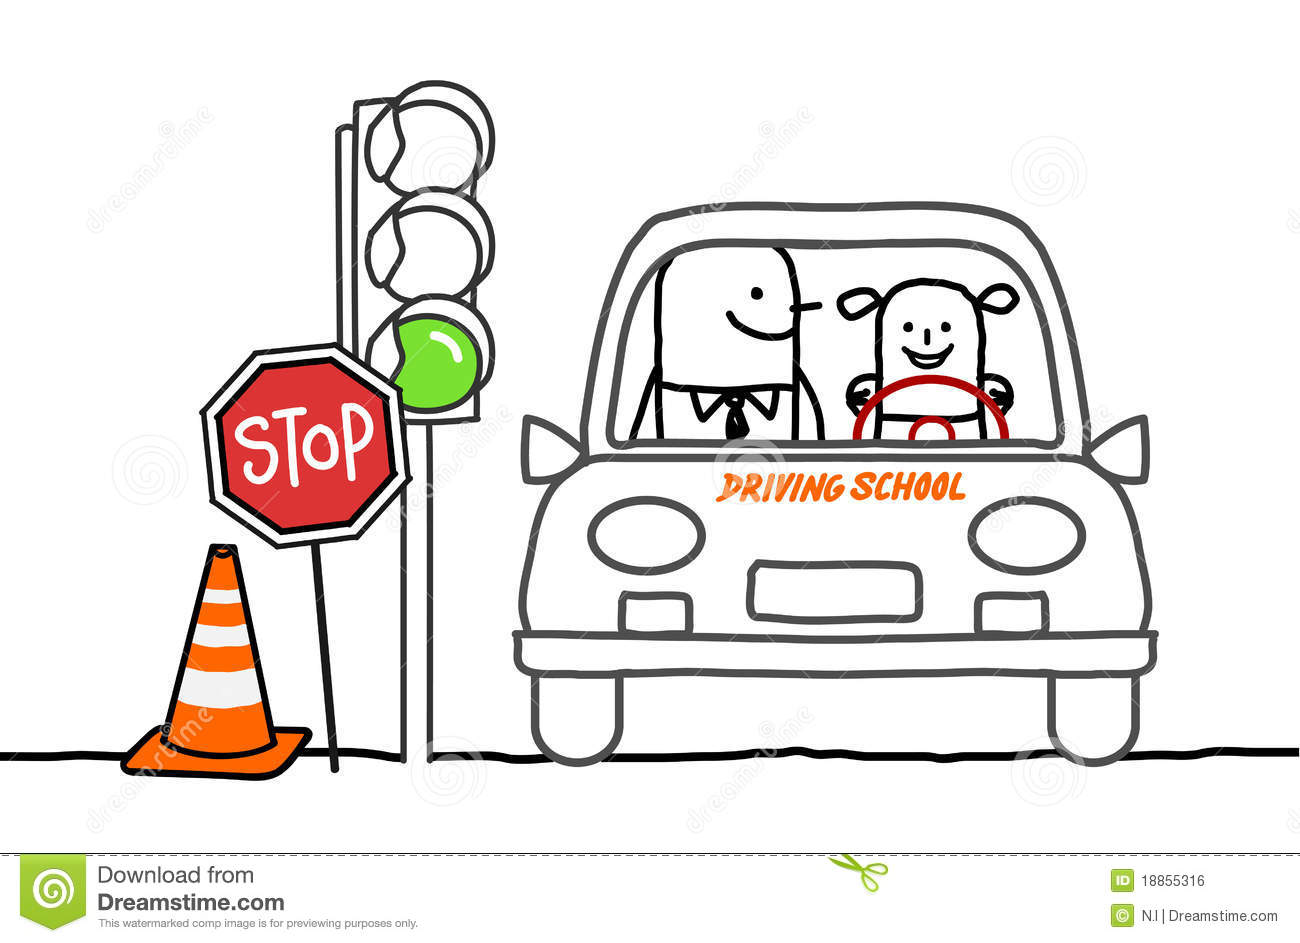 Driving School Royalty Free Stock Image Image 18855316